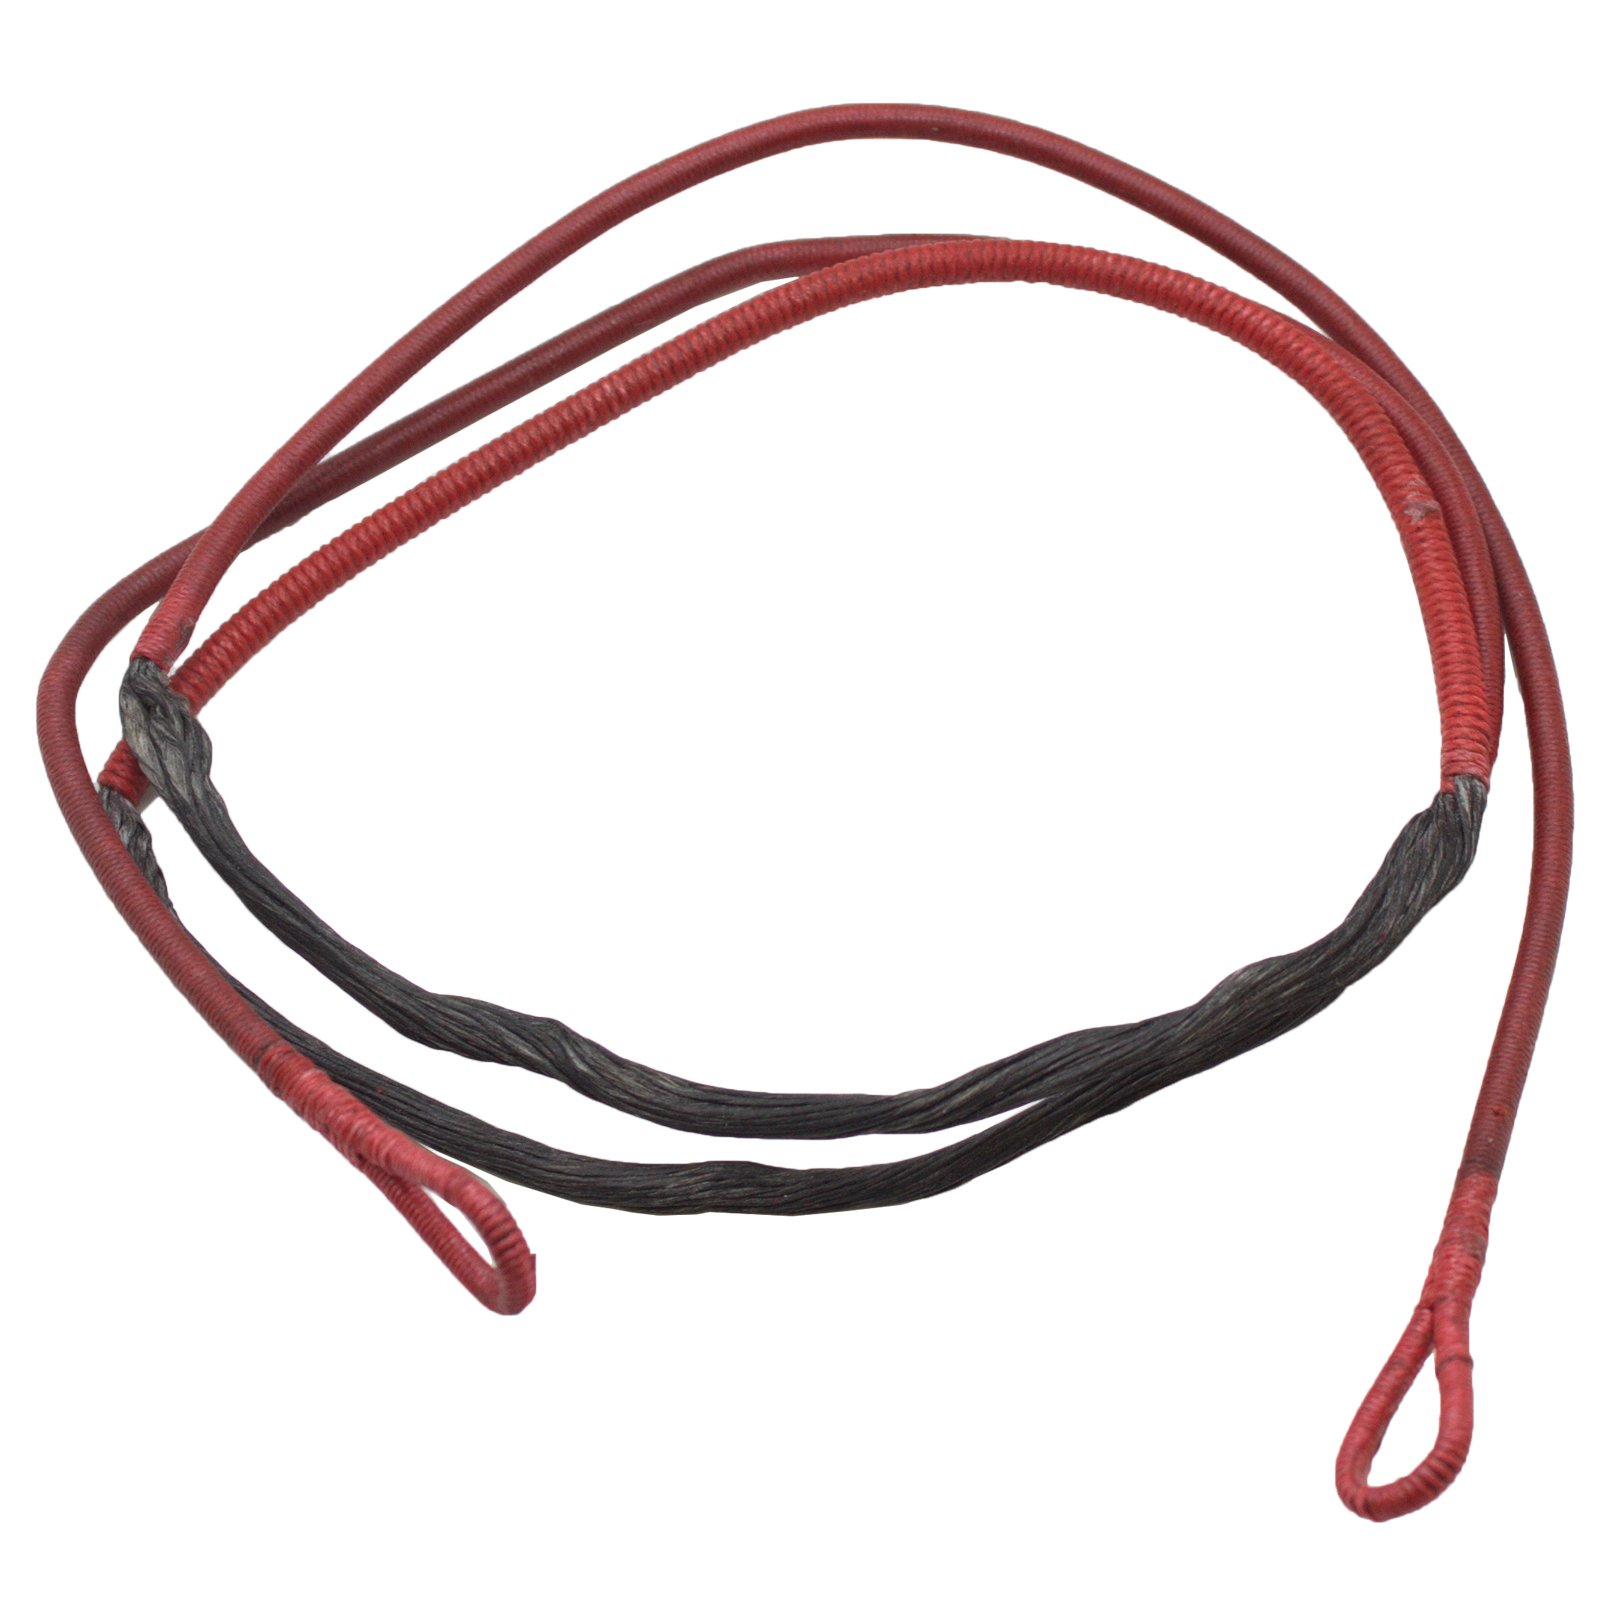 Replacement String for SAS Chopper 175lbs Crossbow